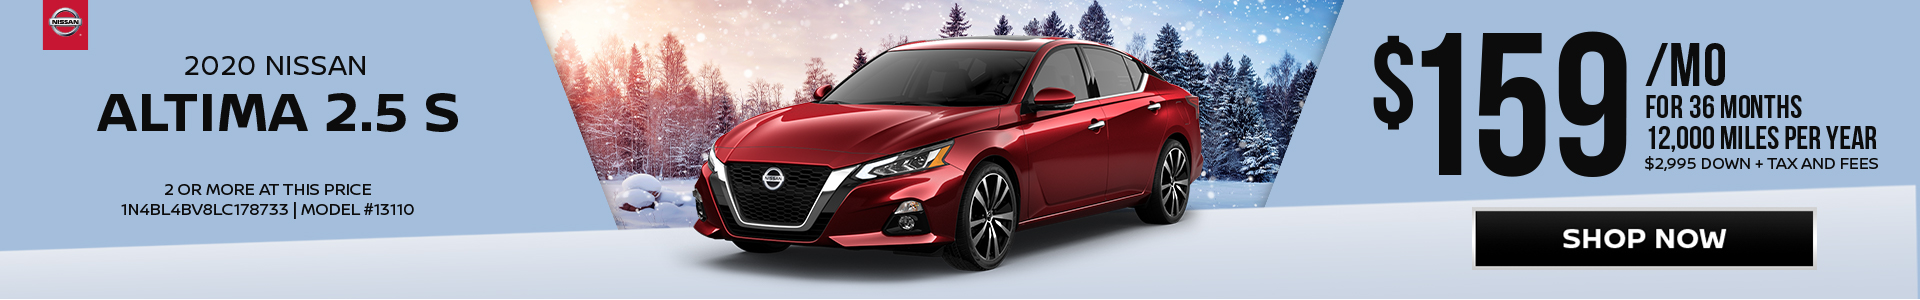 Nissan Altima $159 Lease